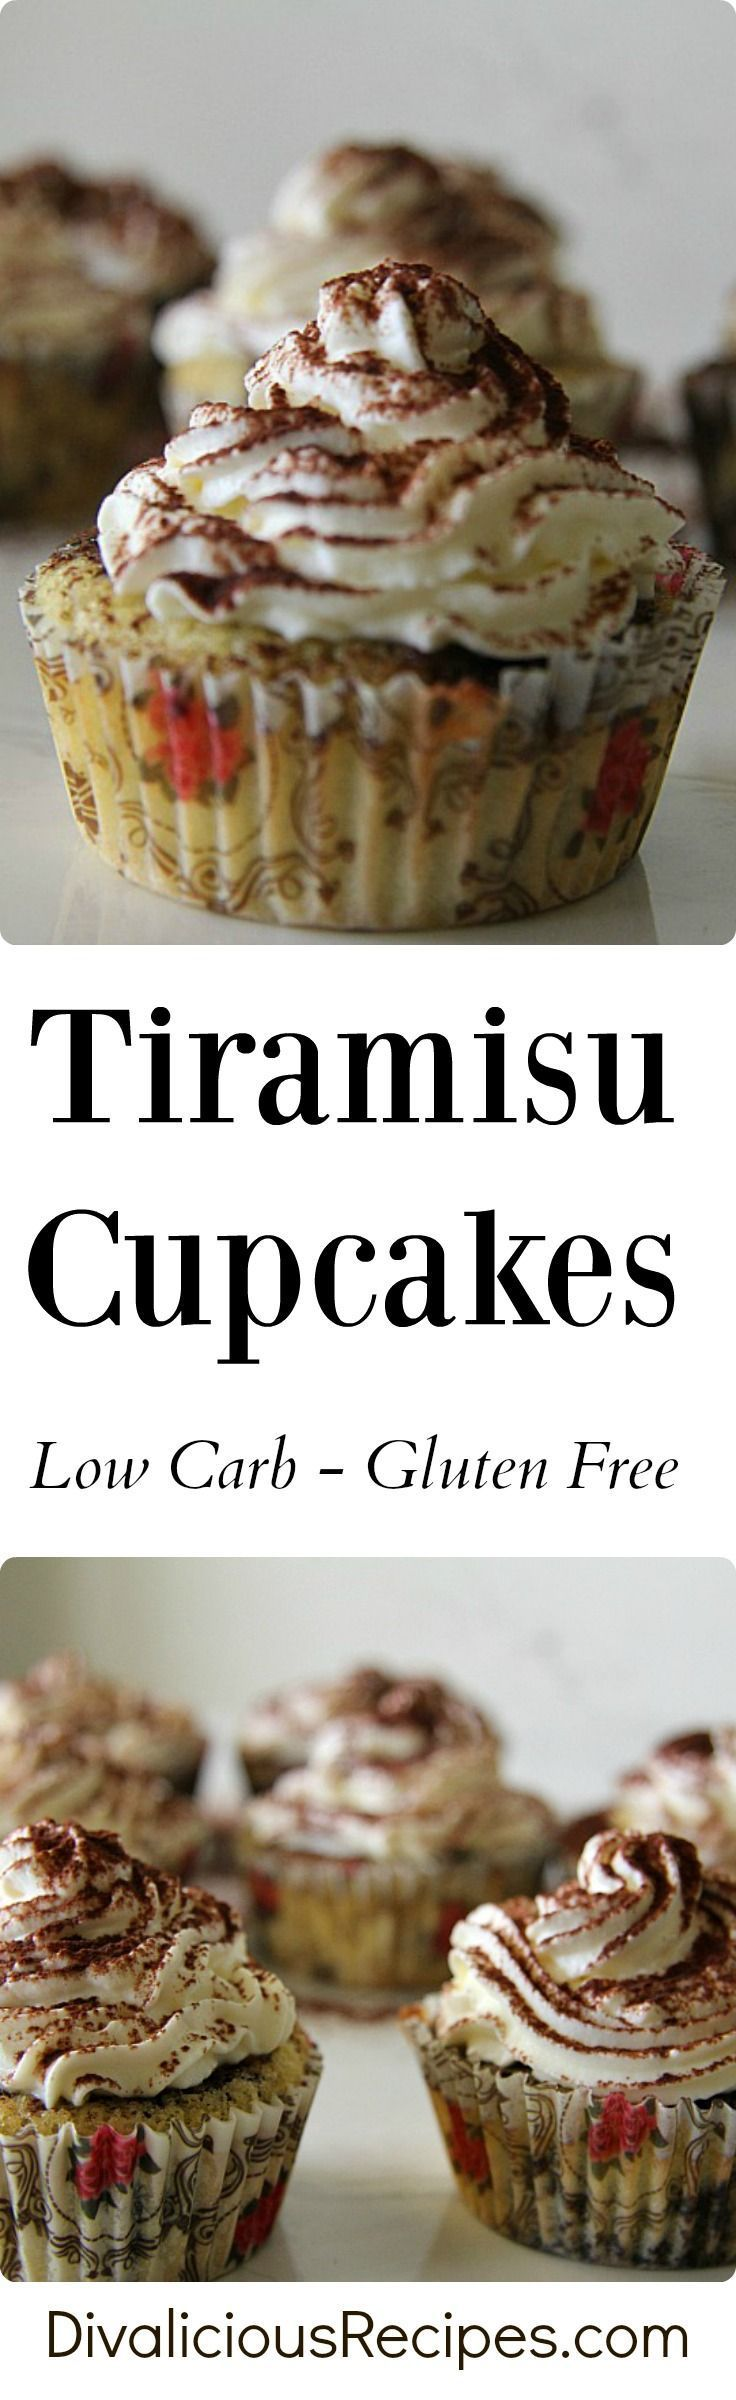 Tiramisu cupcakes that are low carb and gluten free.  A healthier cupcake to enjoy.